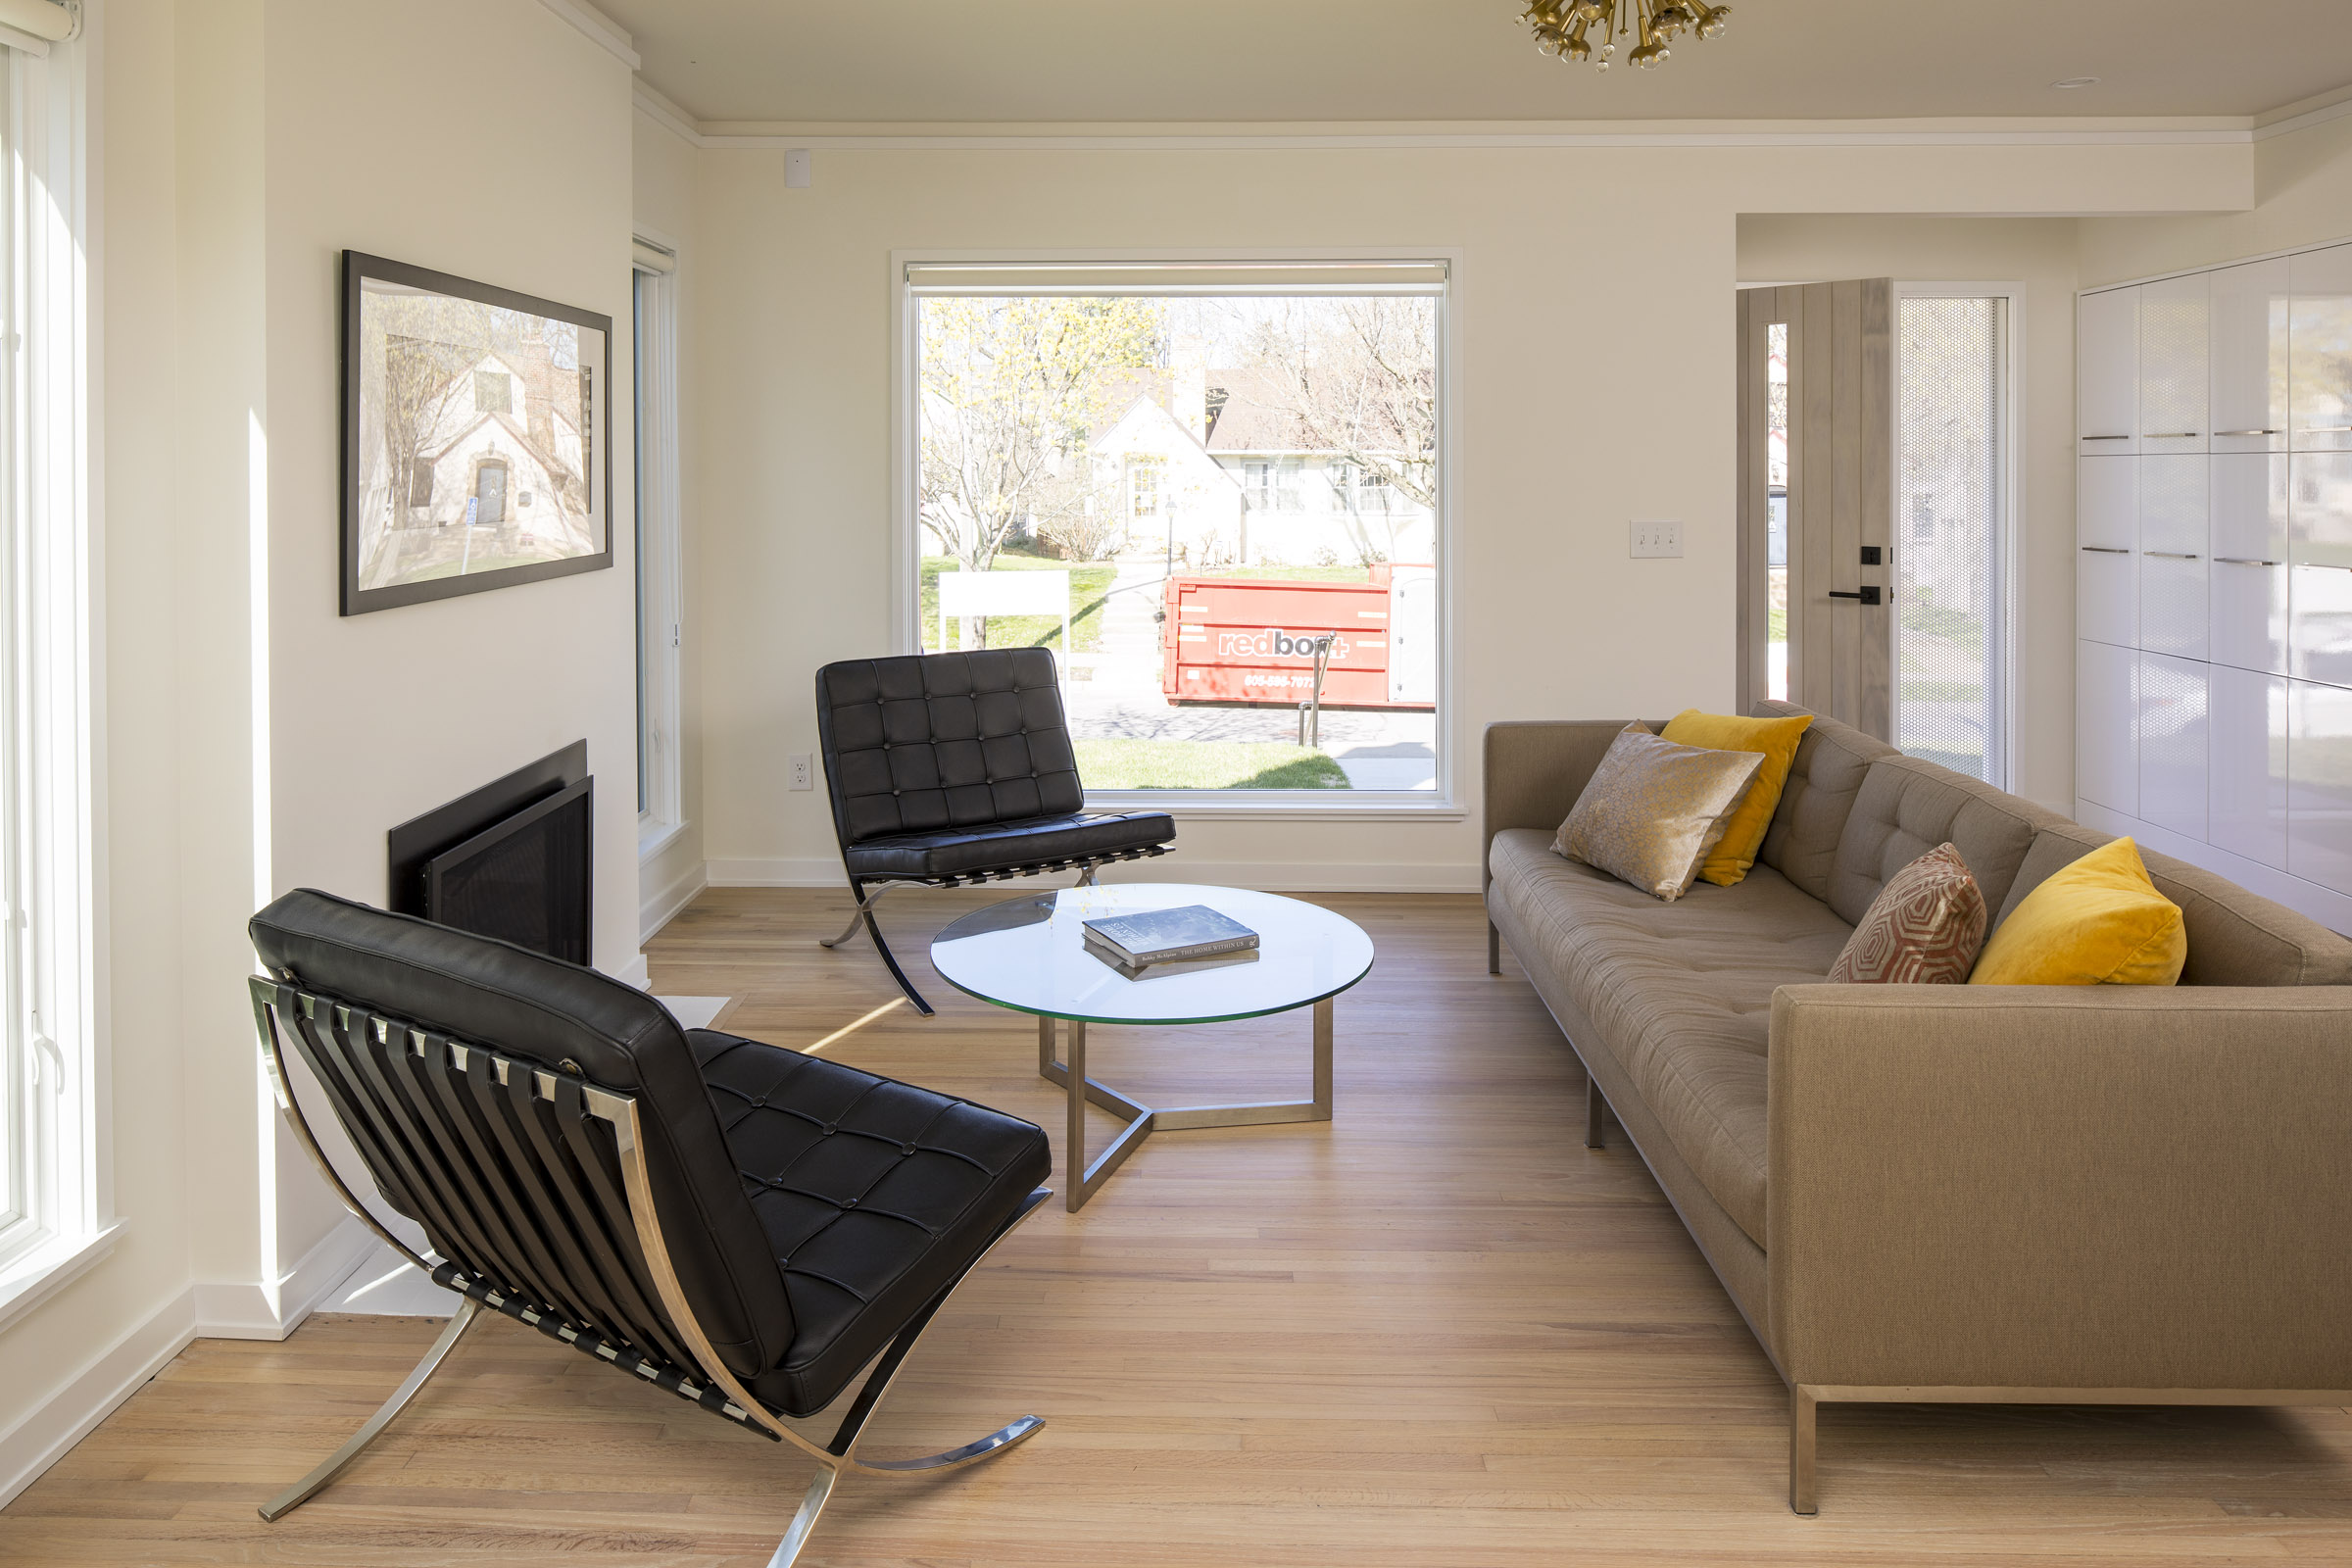 Modern living room remodel with wood floor and large windows